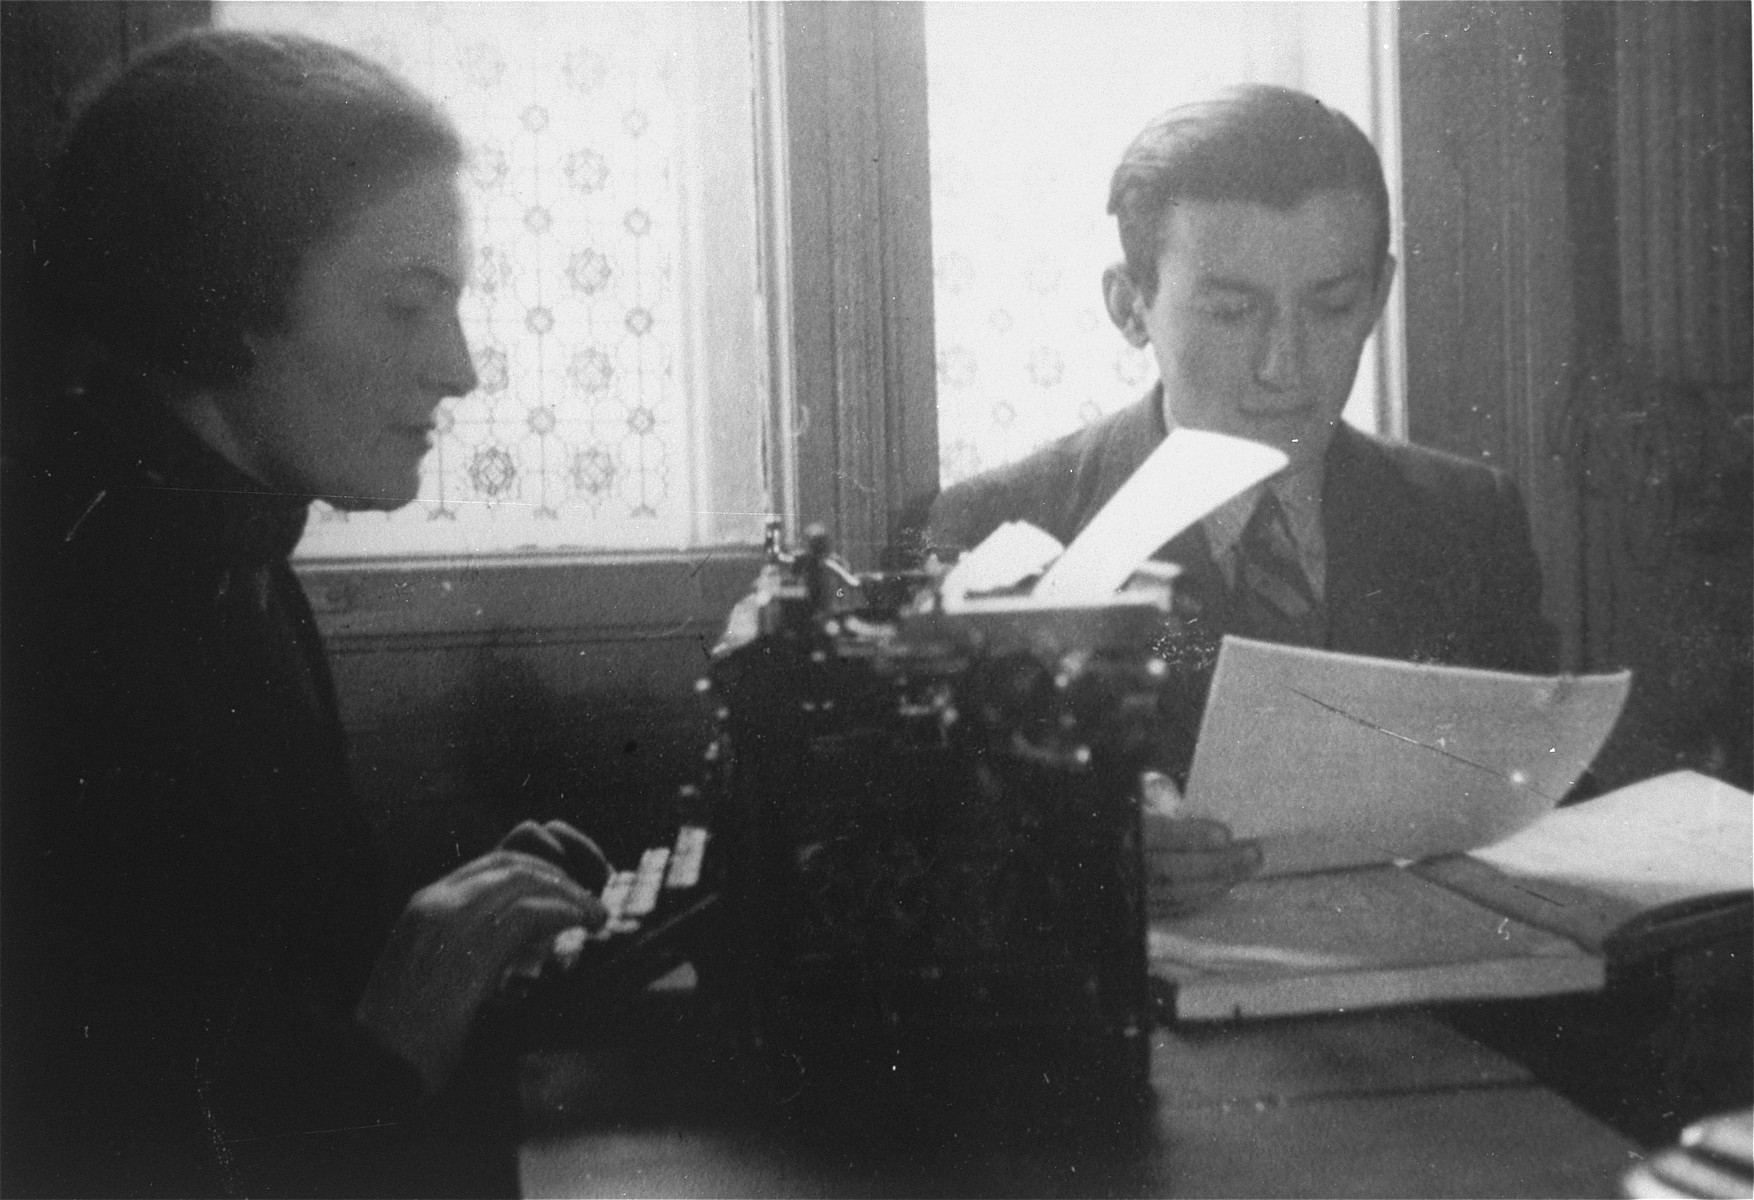 Two members of the ghetto administration sit at a desk in the office of the Judenrat in the Kielce ghetto.  This photo was one the images included in an official album prepared by the Judenrat of the Kielce ghetto in 1942.